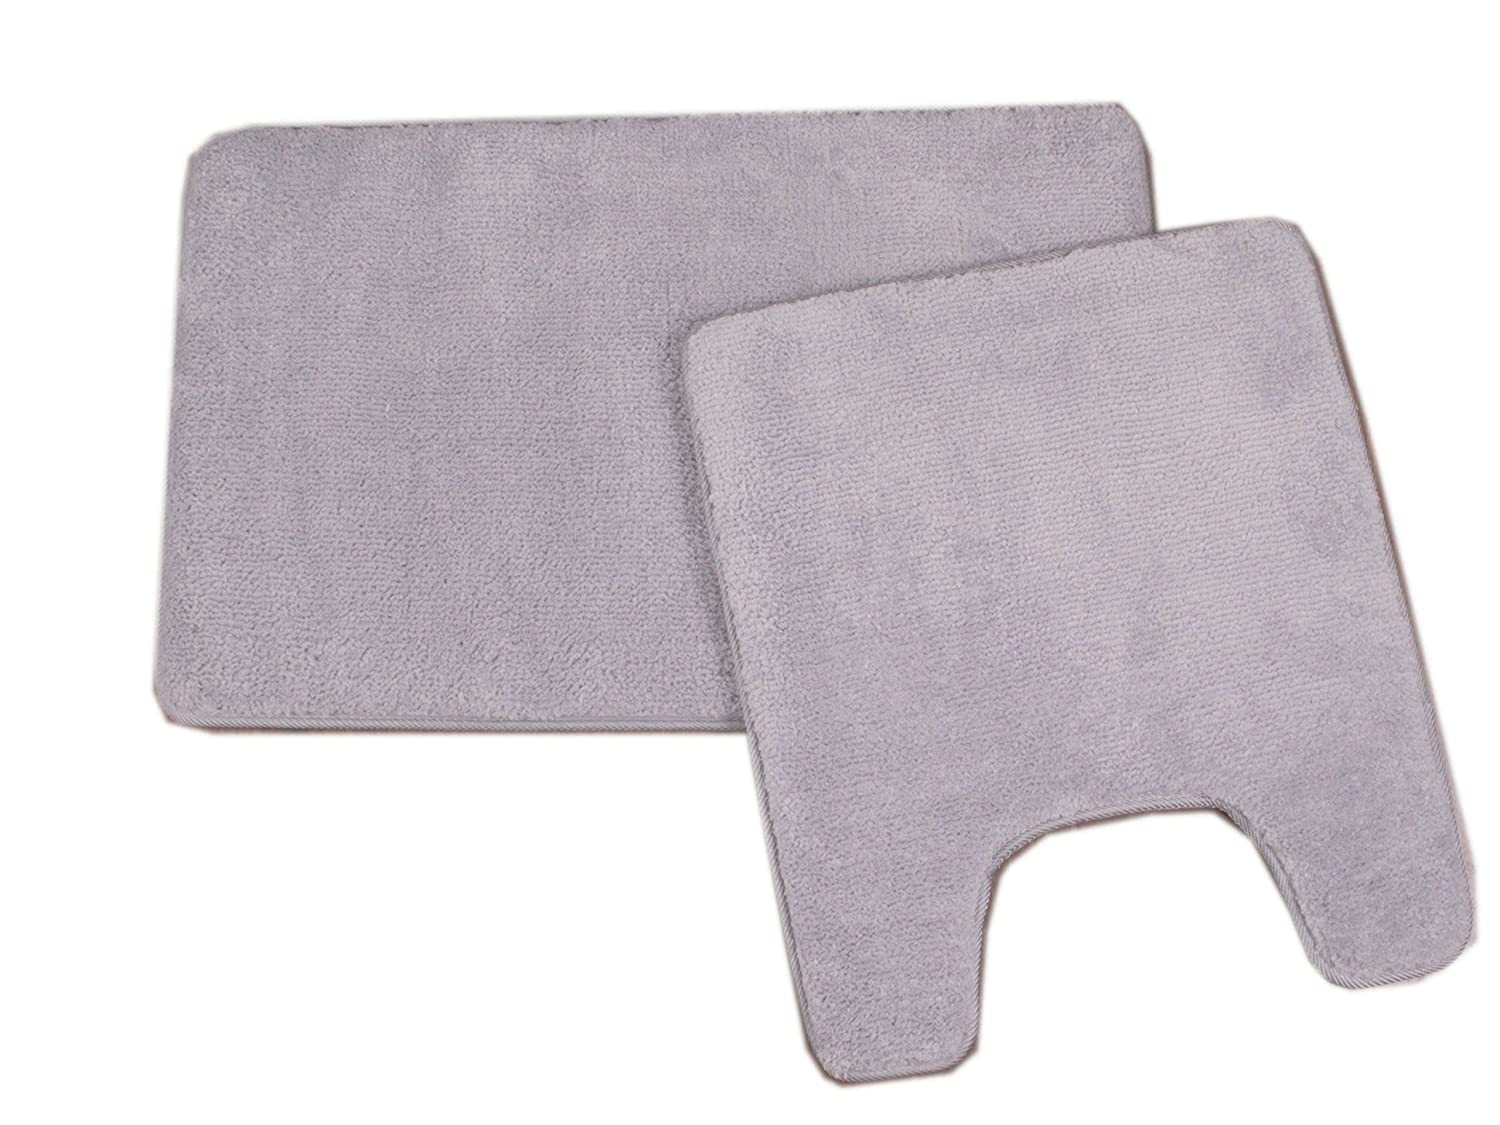 "2 Pc Memory Foam Contour Bath Rug Set 20""x24""+20""x32"" (Grey)"